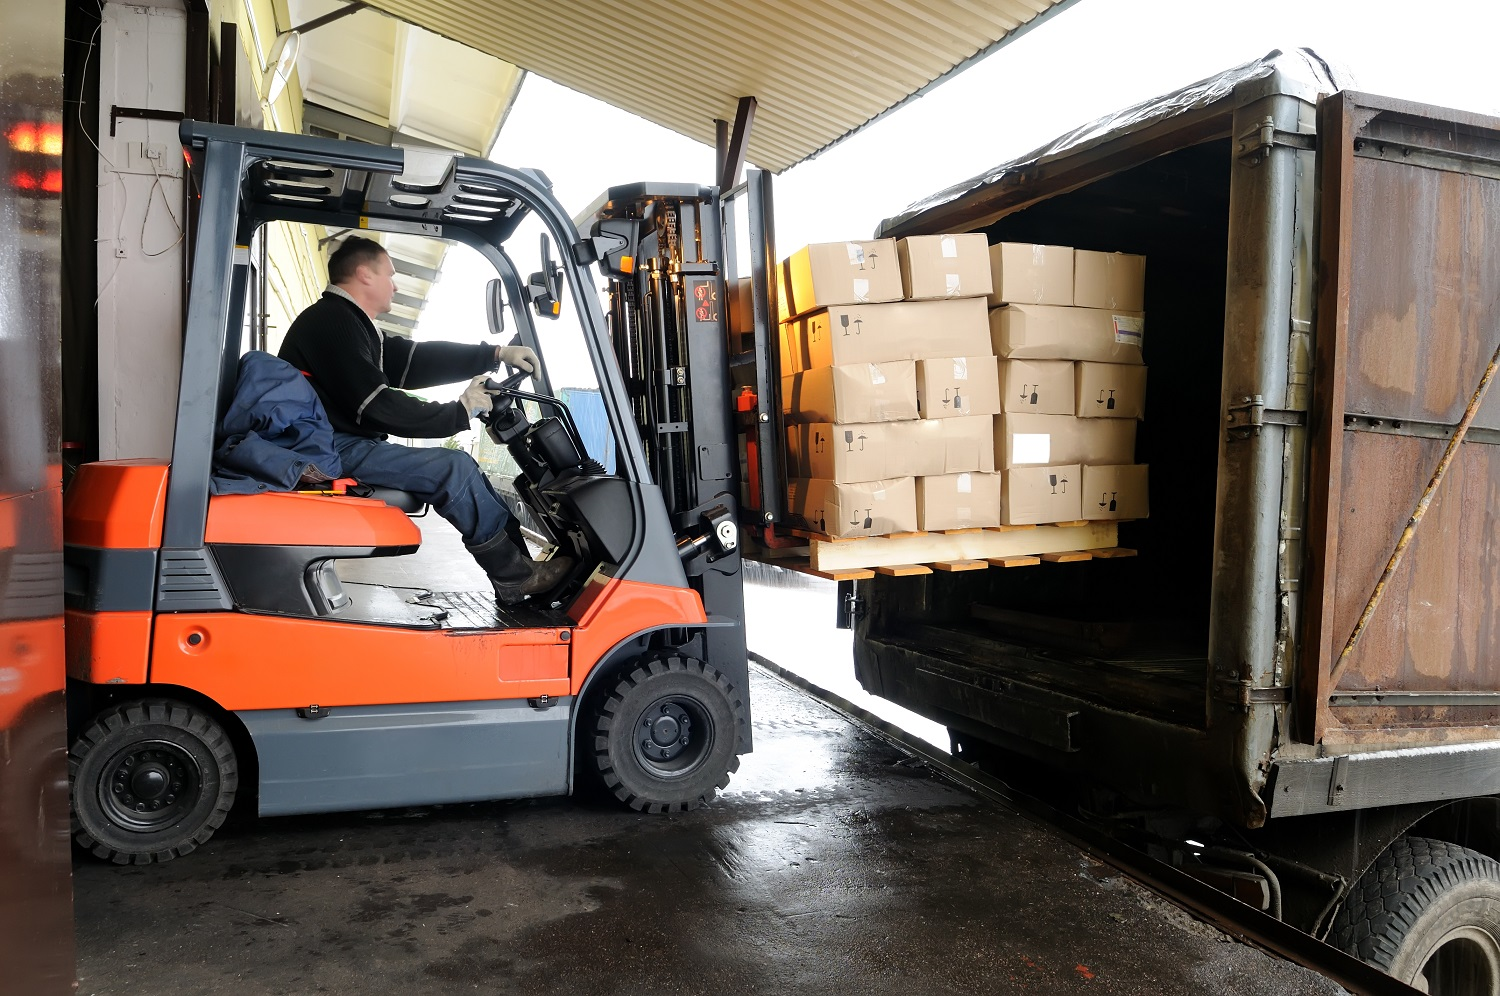 Unsafe Lifting Operation Involving Forklift Leads to Life Changing Injuries for HGV Driver